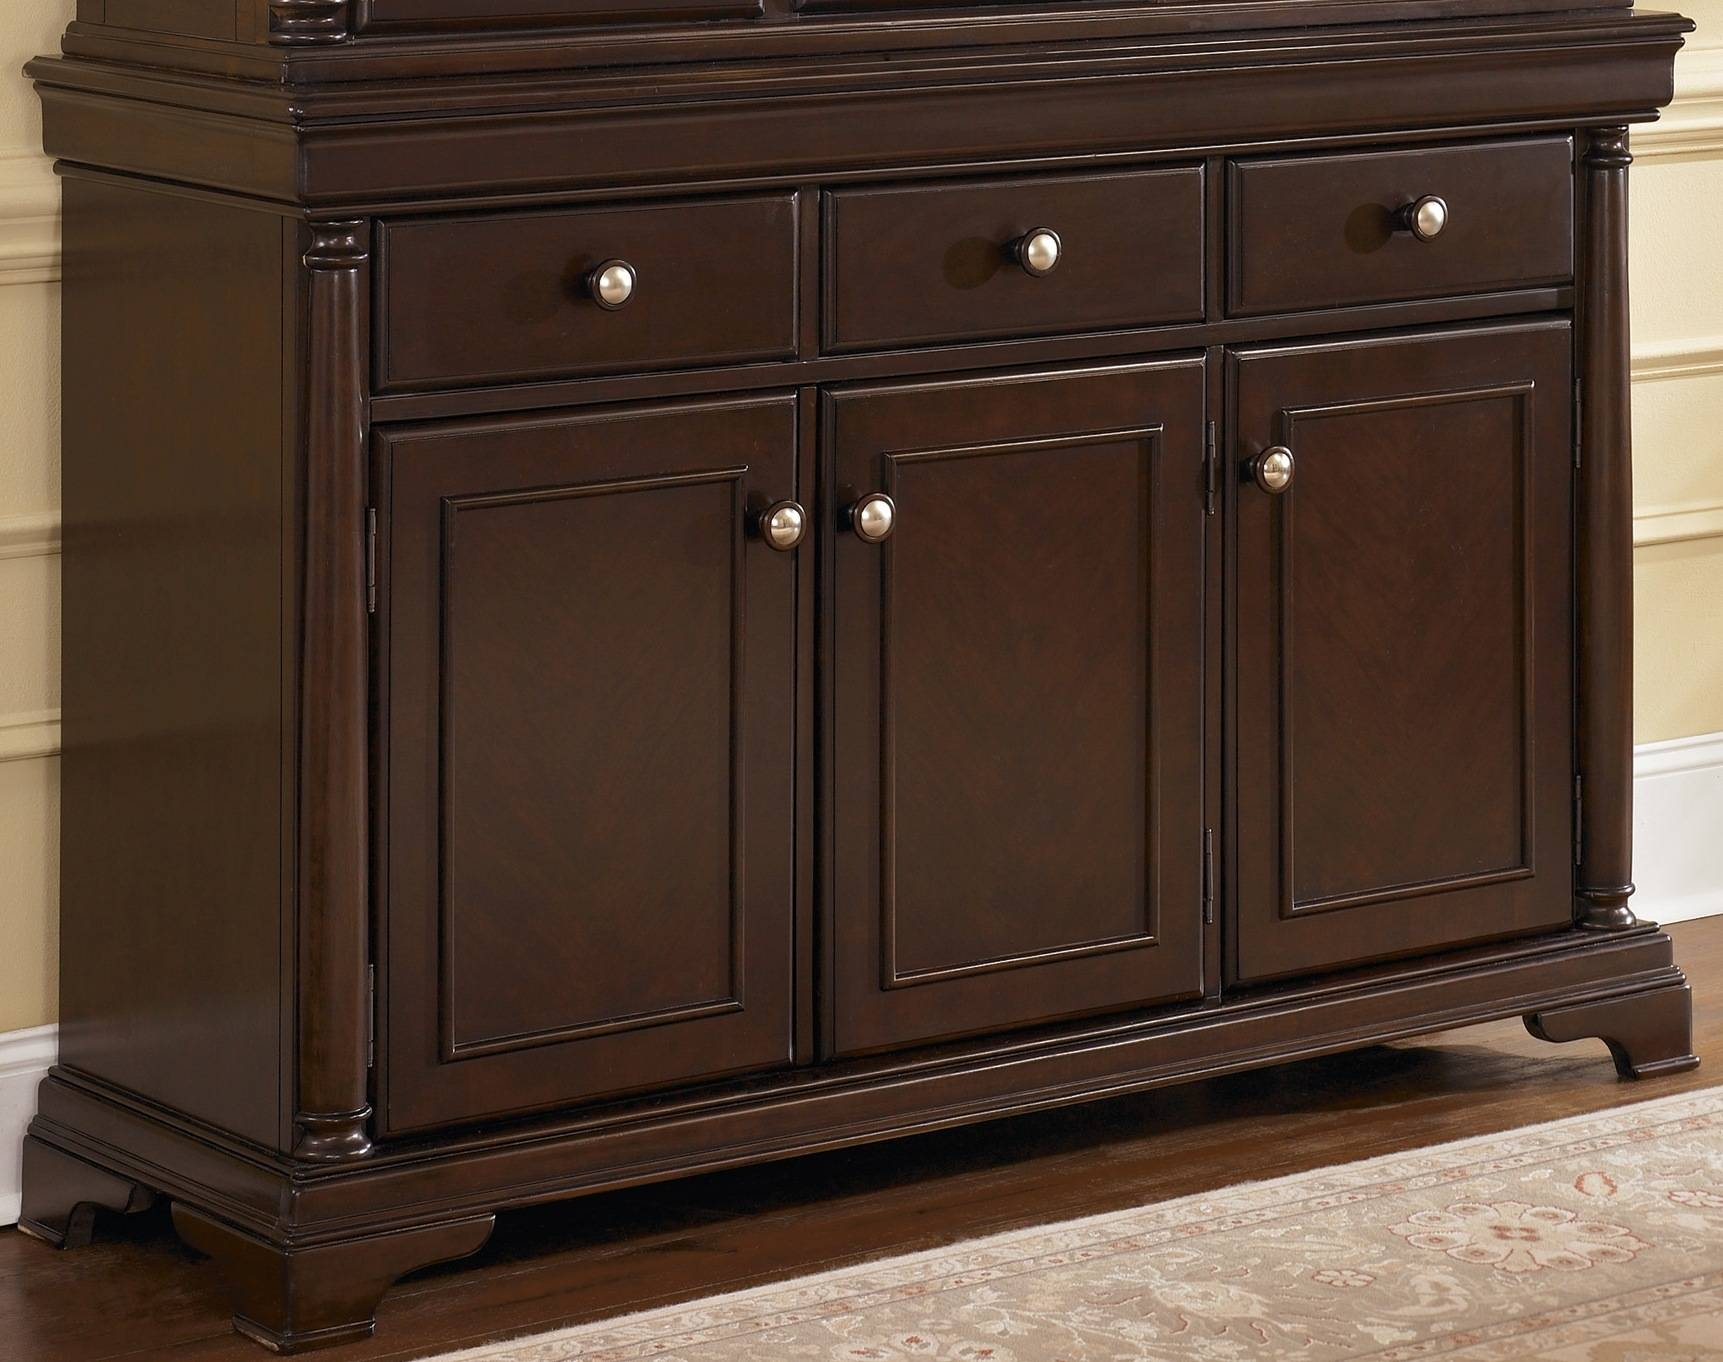 Dining Room Credenza Ideas Including Buffet Cabinet Pictures Pertaining To Black Dining Room Sideboards (View 13 of 15)